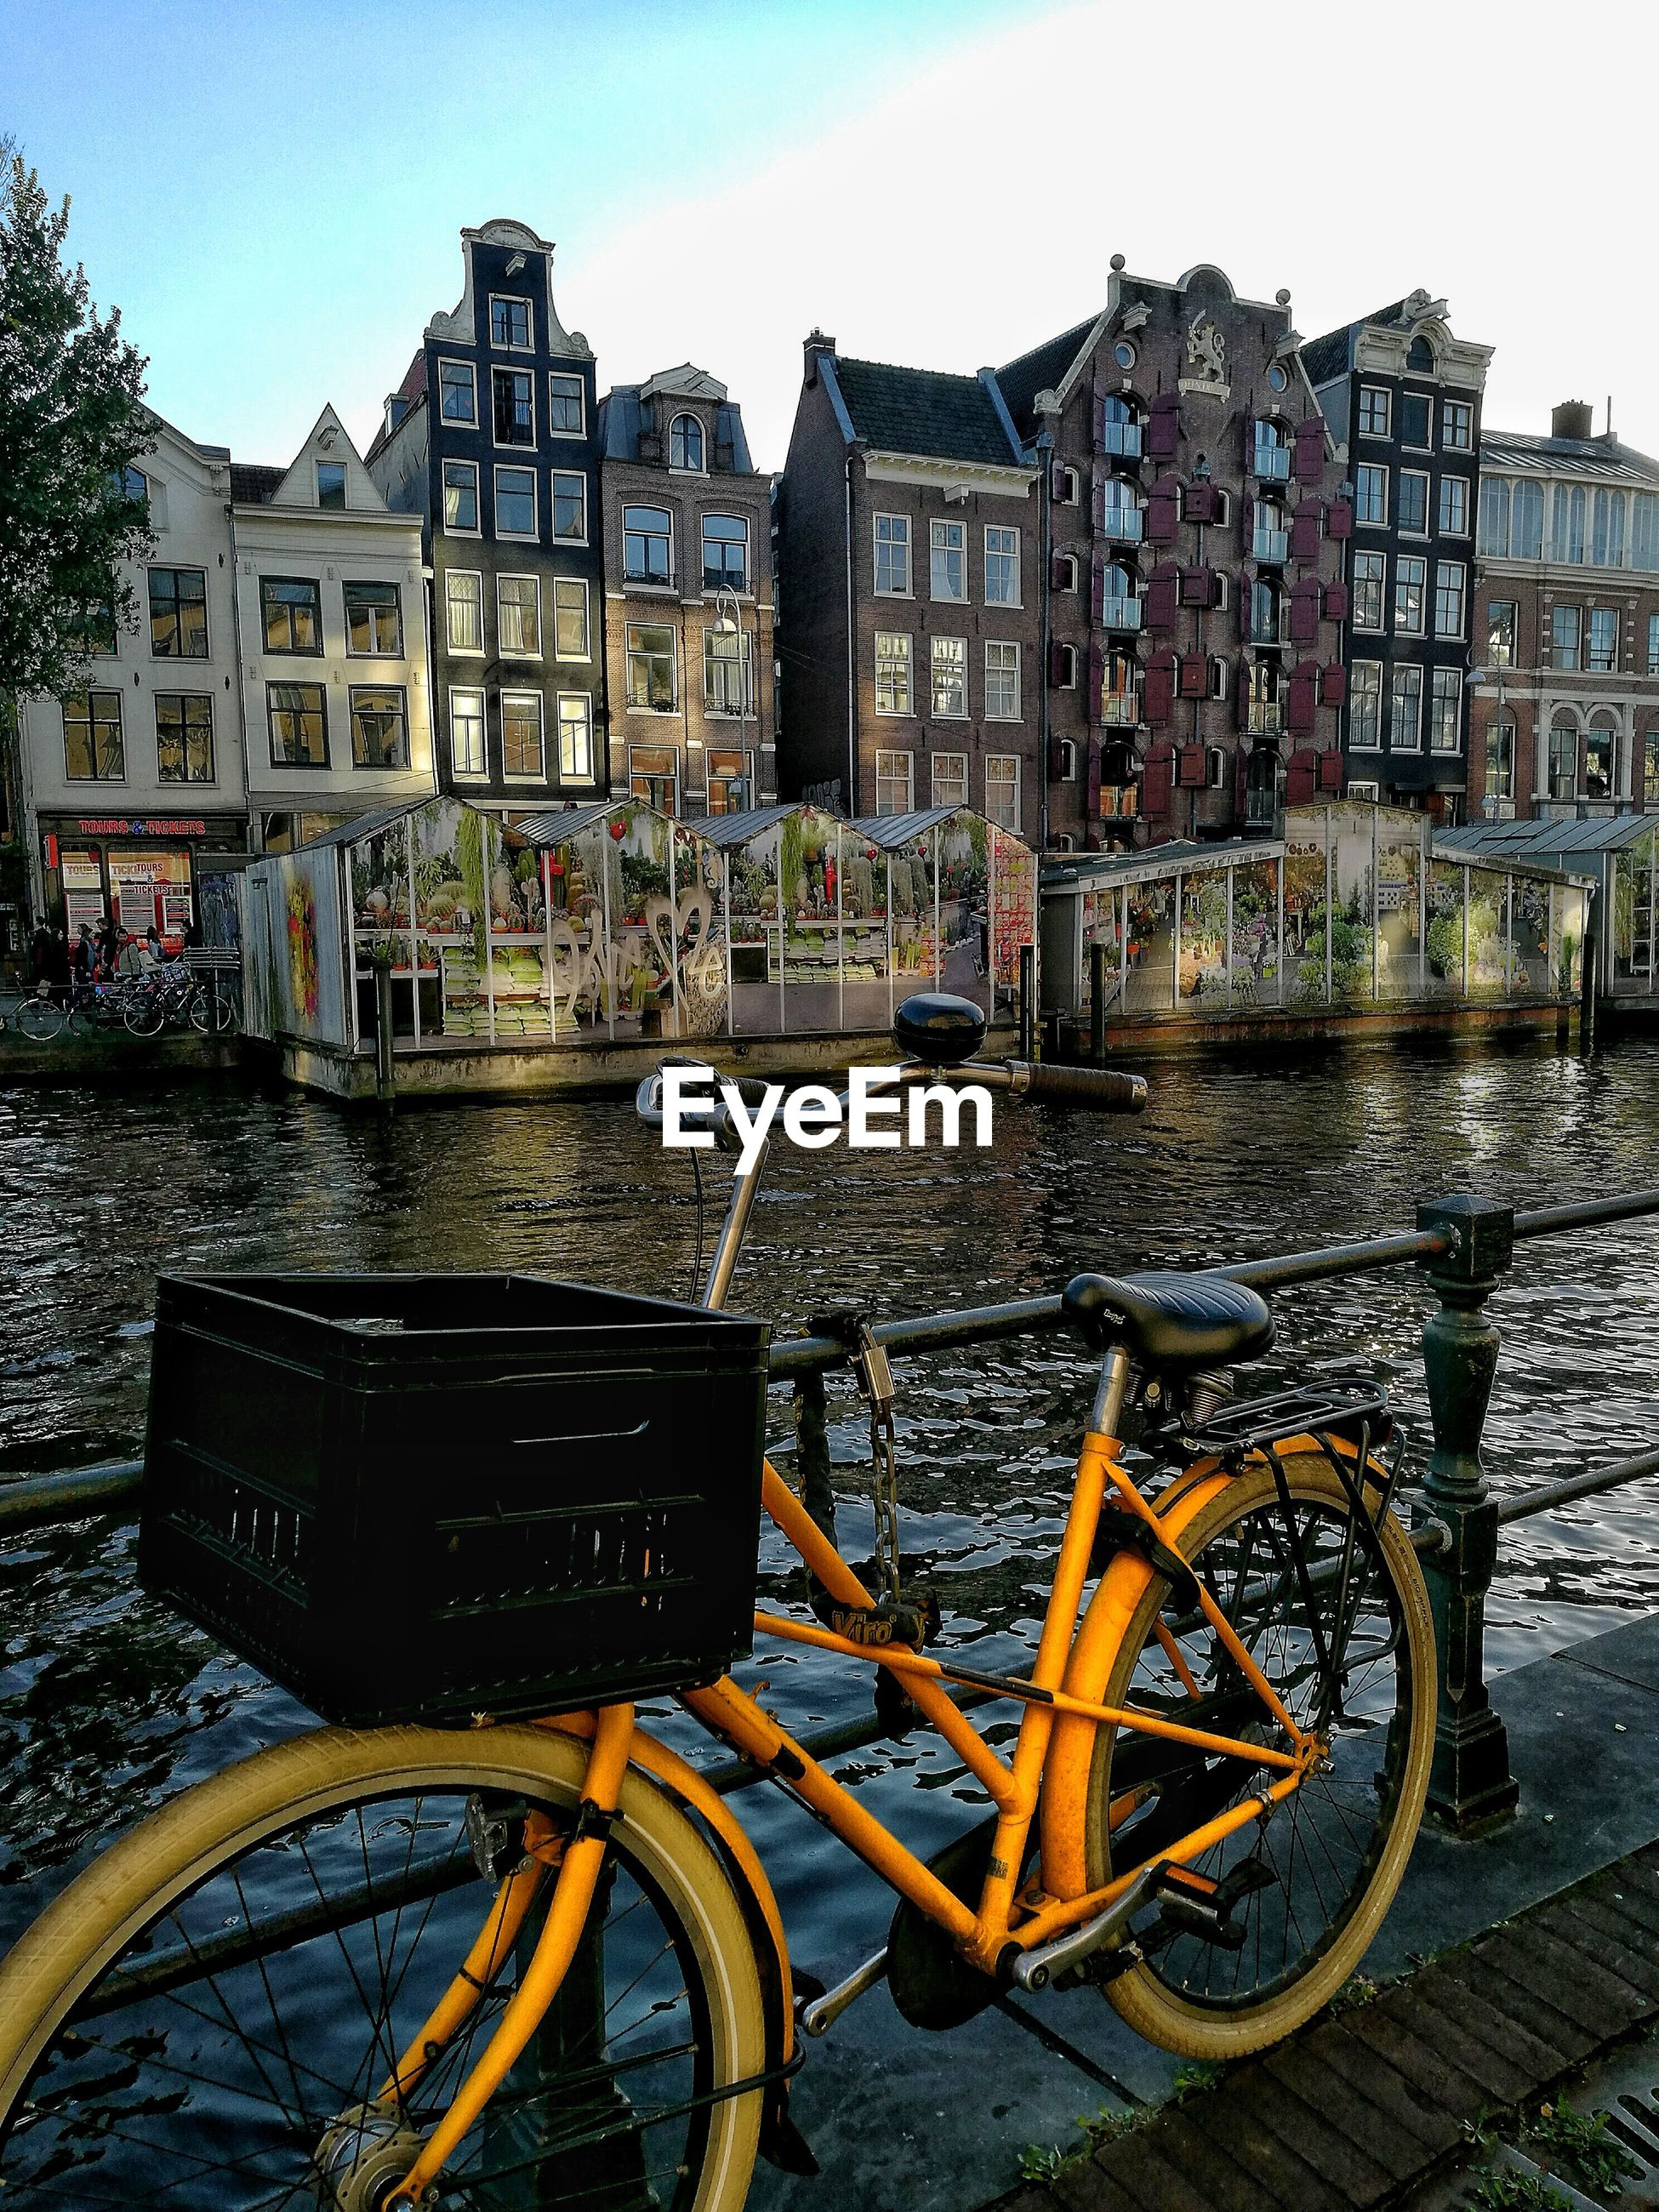 Bicycle parked by canal in city